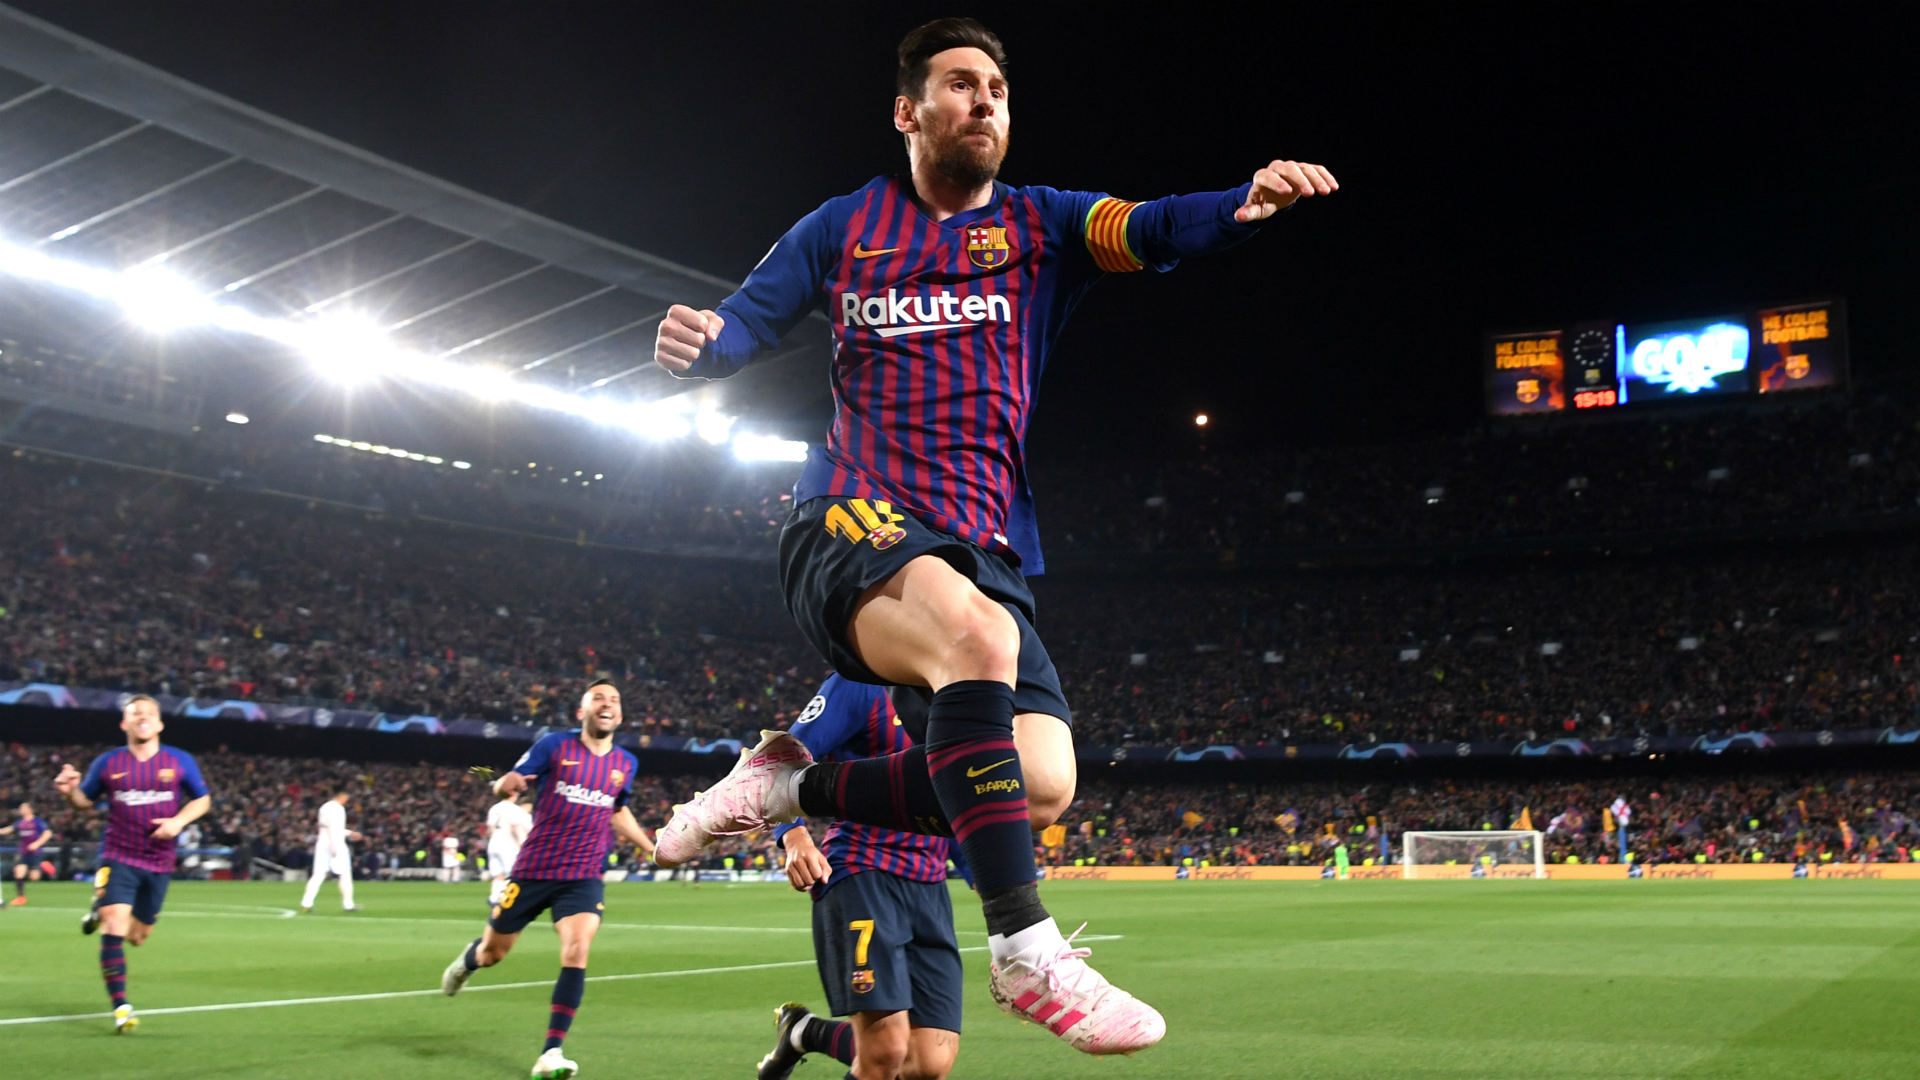 Messi brought his 'A game' against United – Lingard